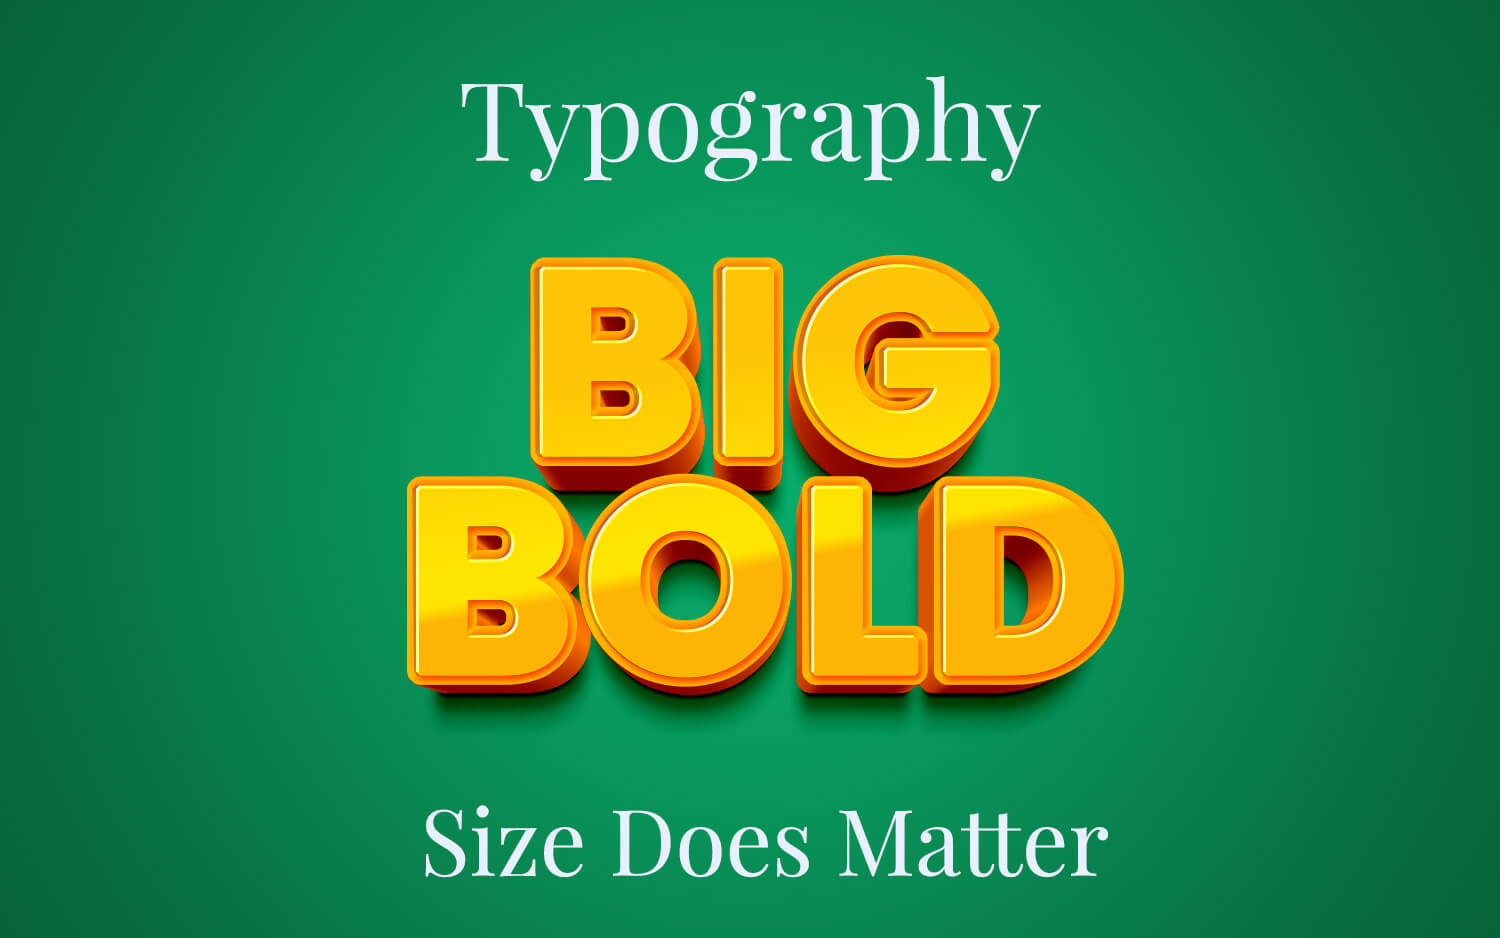 Big and Bold Typography